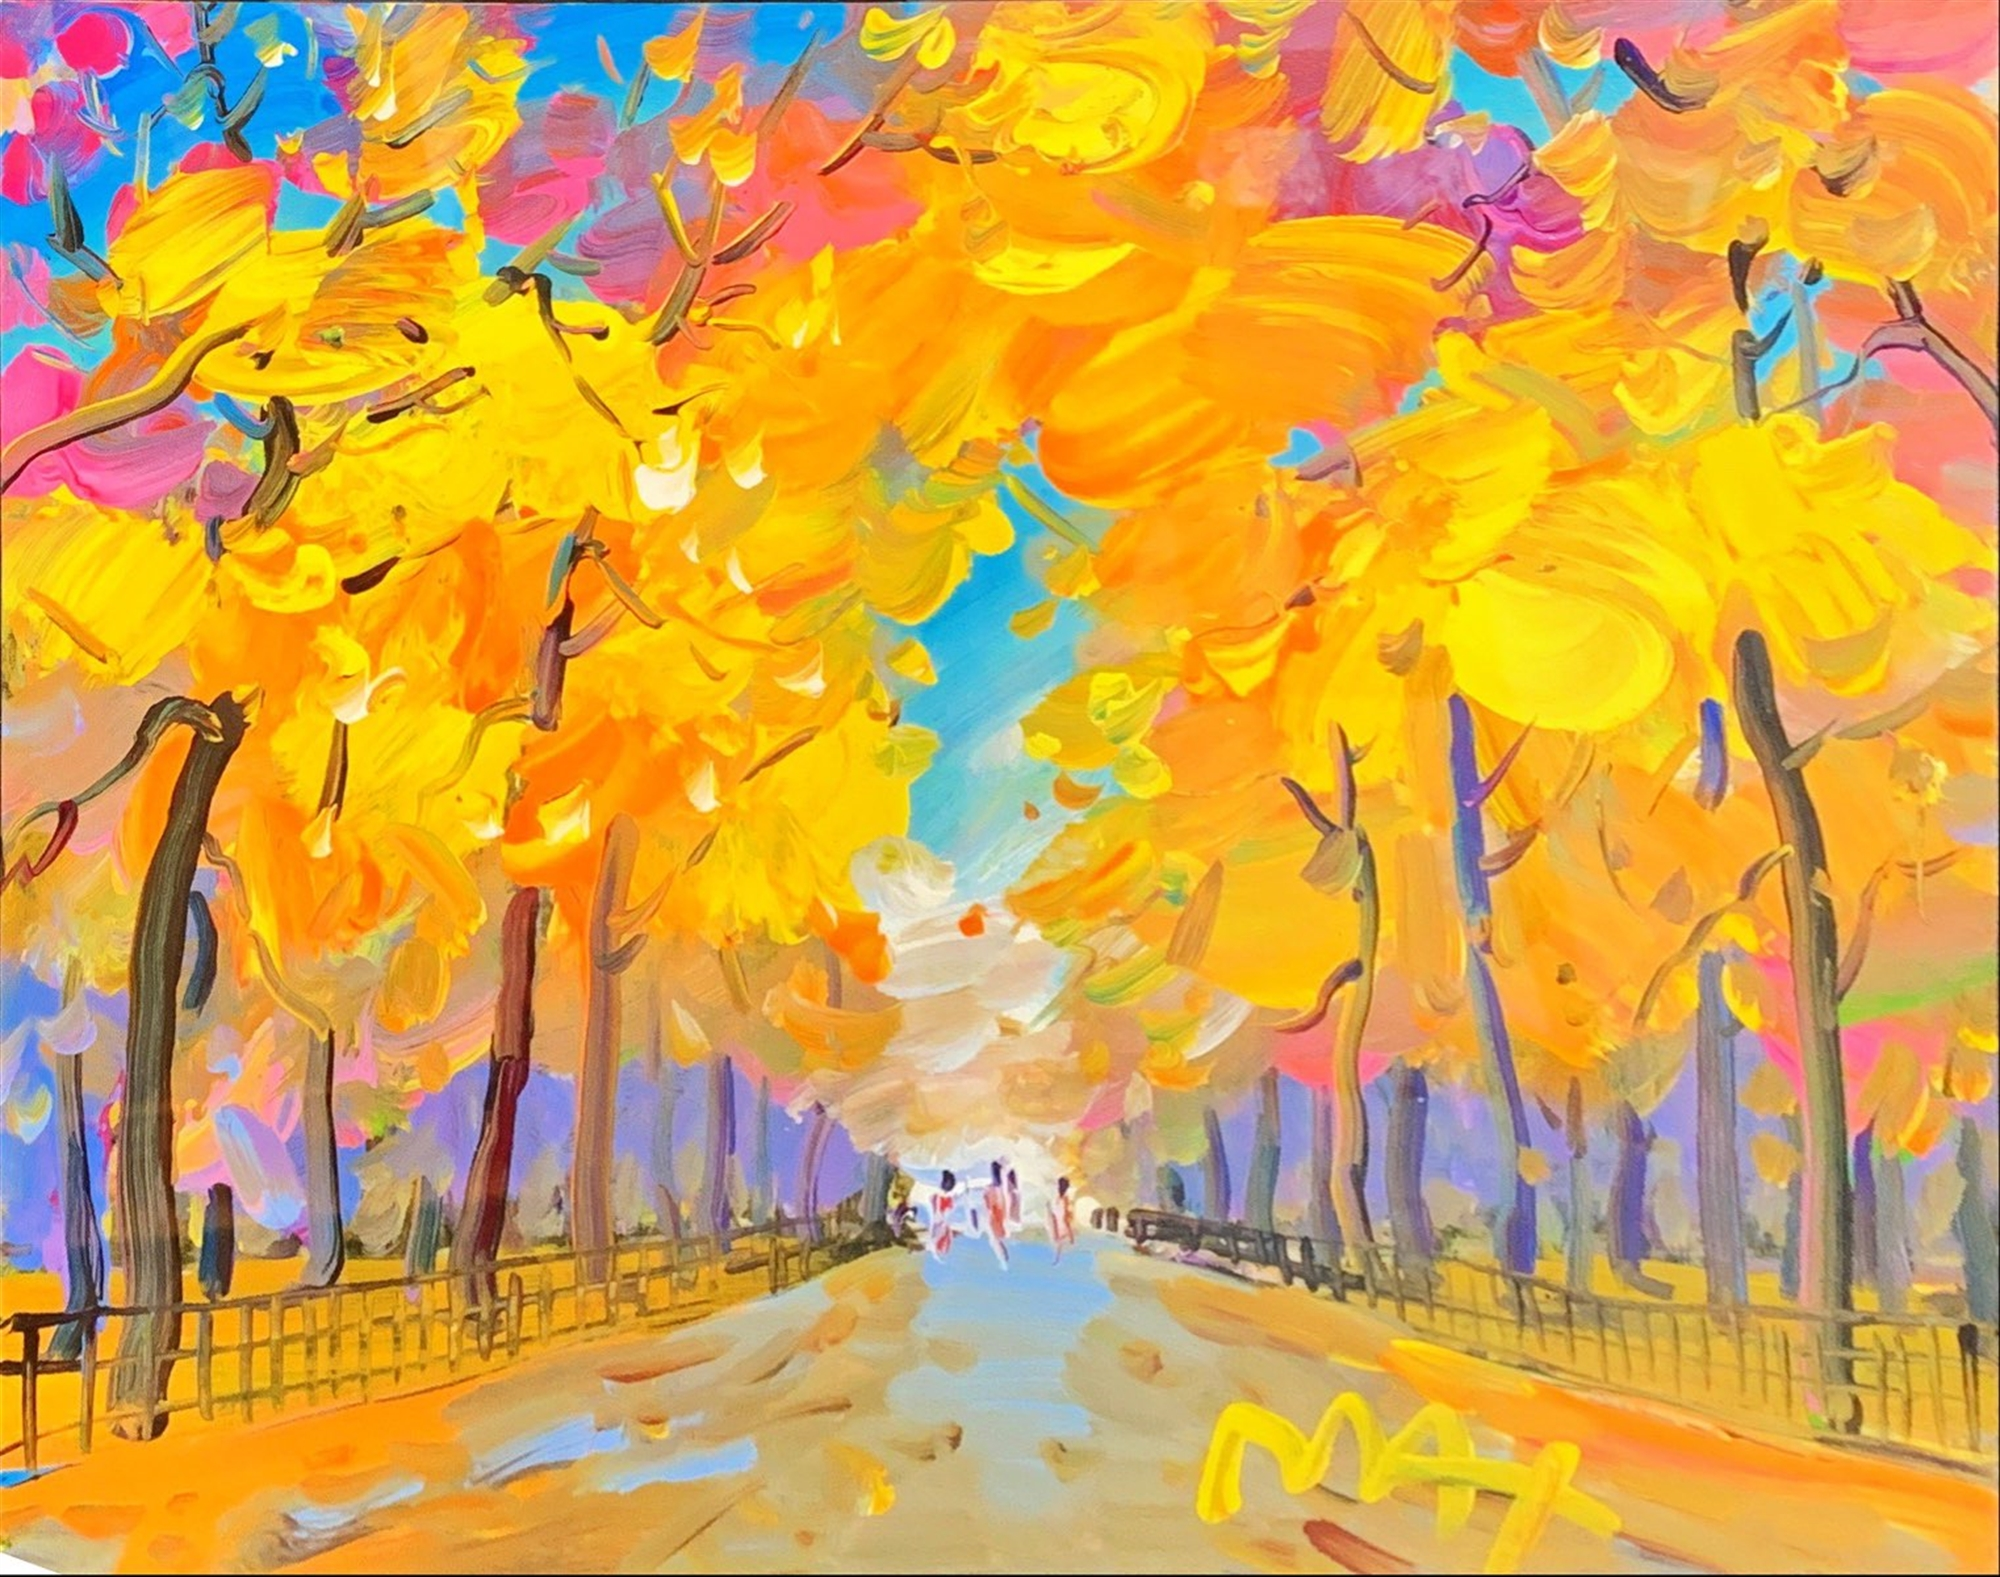 Four Seasons II: Autumn (Central Park) by Peter Max